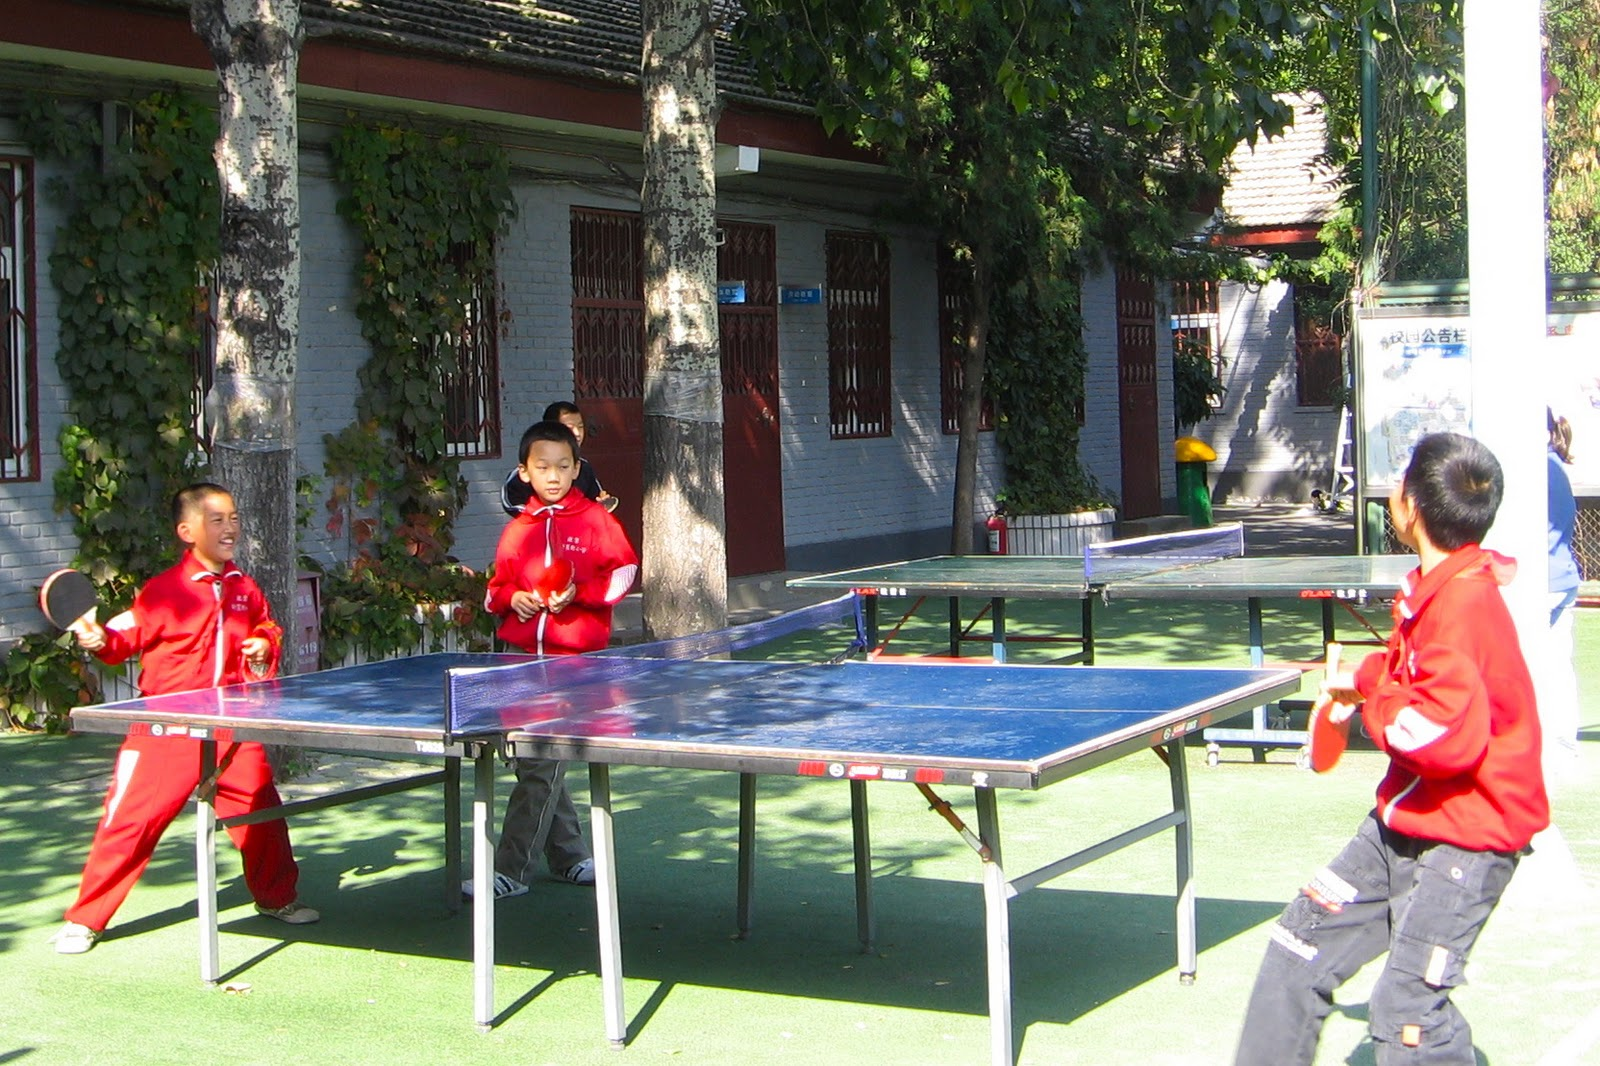 According To Historic Accounts, Chairman Mao Loved Table Tennis, Commonly  Known As Ping Pong. He Ordered Cement Ping Pong Tables To Be Built In Parks  All ...